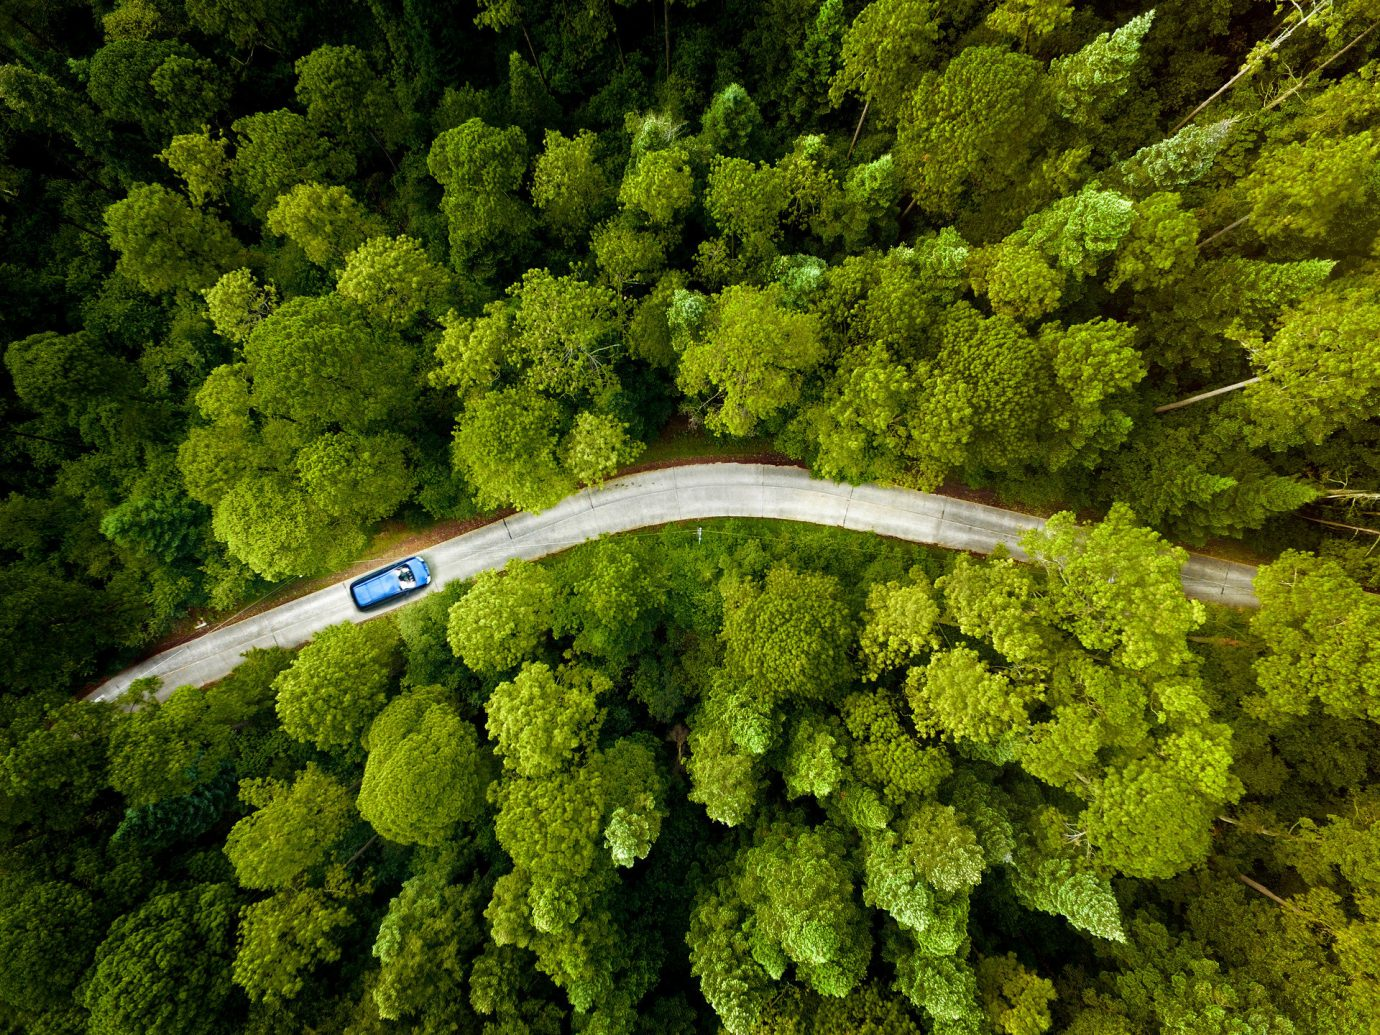 Road Trips Trip Ideas tree green vegetation ecosystem plant botany leaf land plant Forest moss aerial photography woody plant soil flower rainforest shrub non vascular land plant